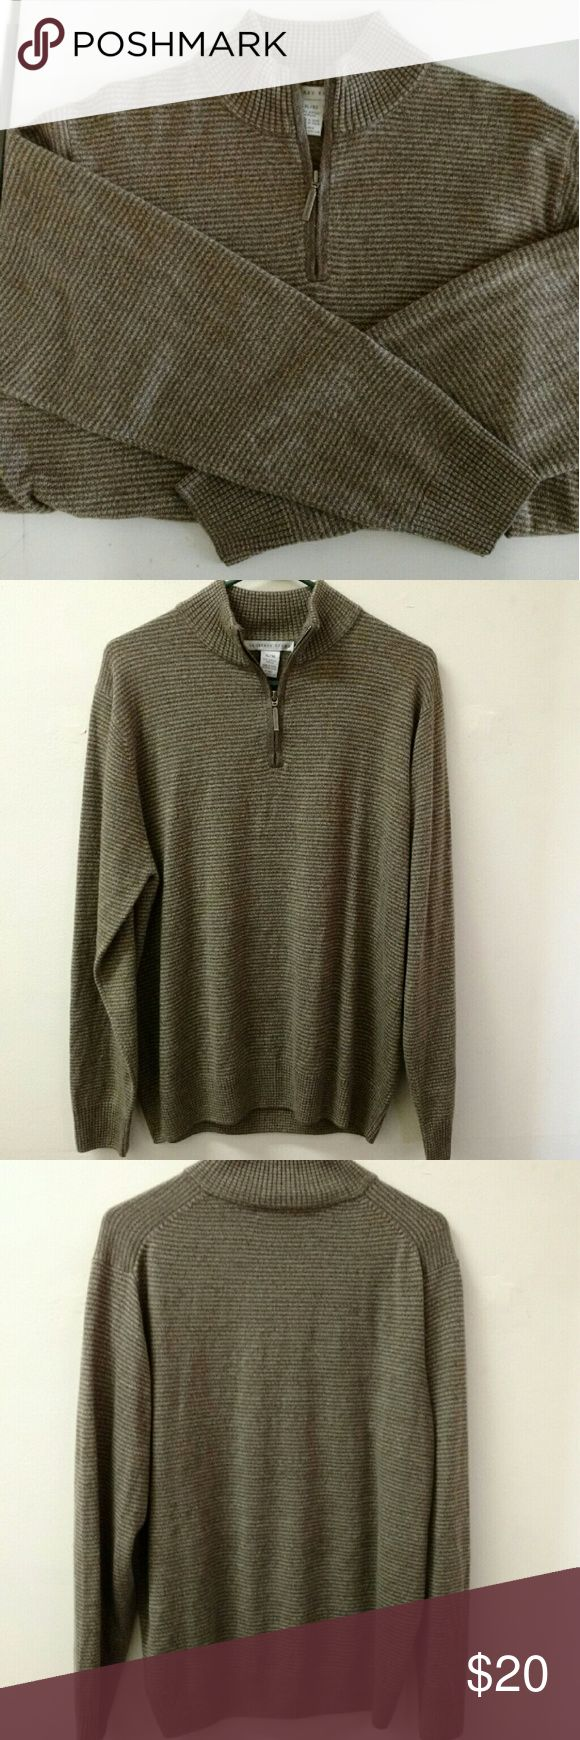 Geoffrey Beene shirt Like new Geoffrey Beene long sleeve shirt. You will love to cuddle with your man in this shirt, it is So soft!!! 100% acrylic material from a smoke and pet free home Geoffrey Beene Sweaters